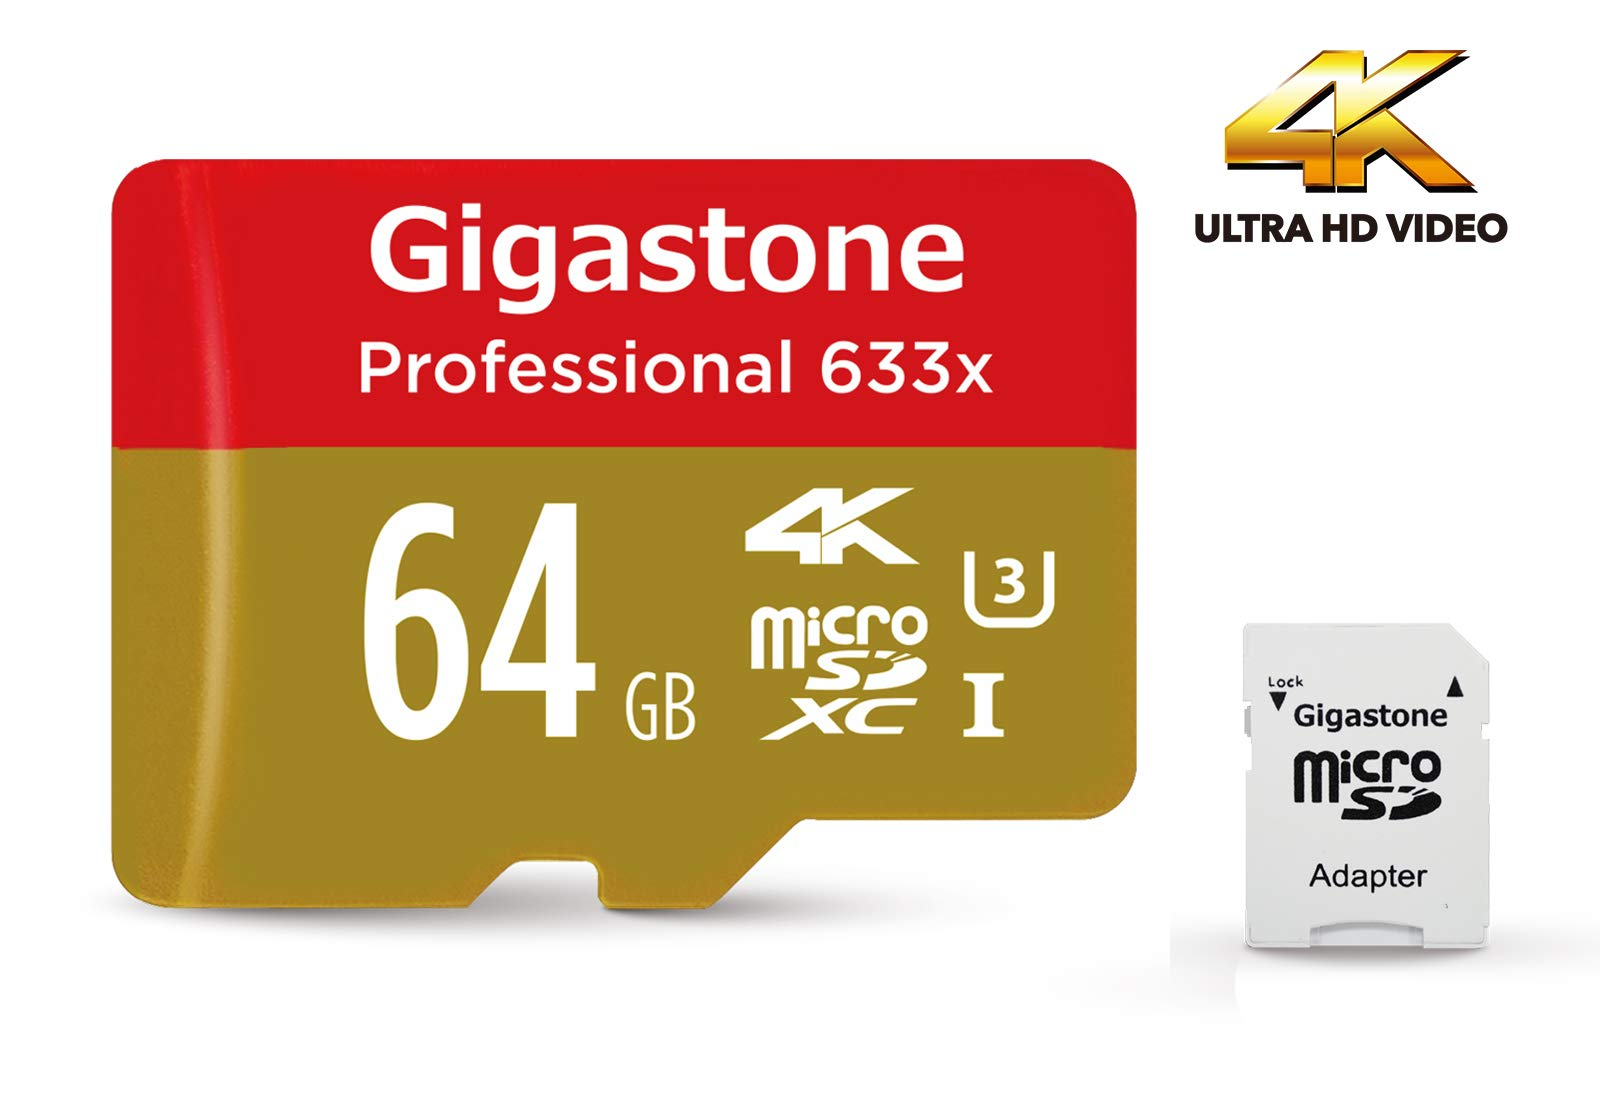 Gigastone Pro 64GB Micro SD Card UHS-I U3 up to 95MB/s with Adapter, Rexing, Dashcam, GoPro, Camera, Samsung, Canon, Nikon, DJI, Drone, 4K Ultra HD